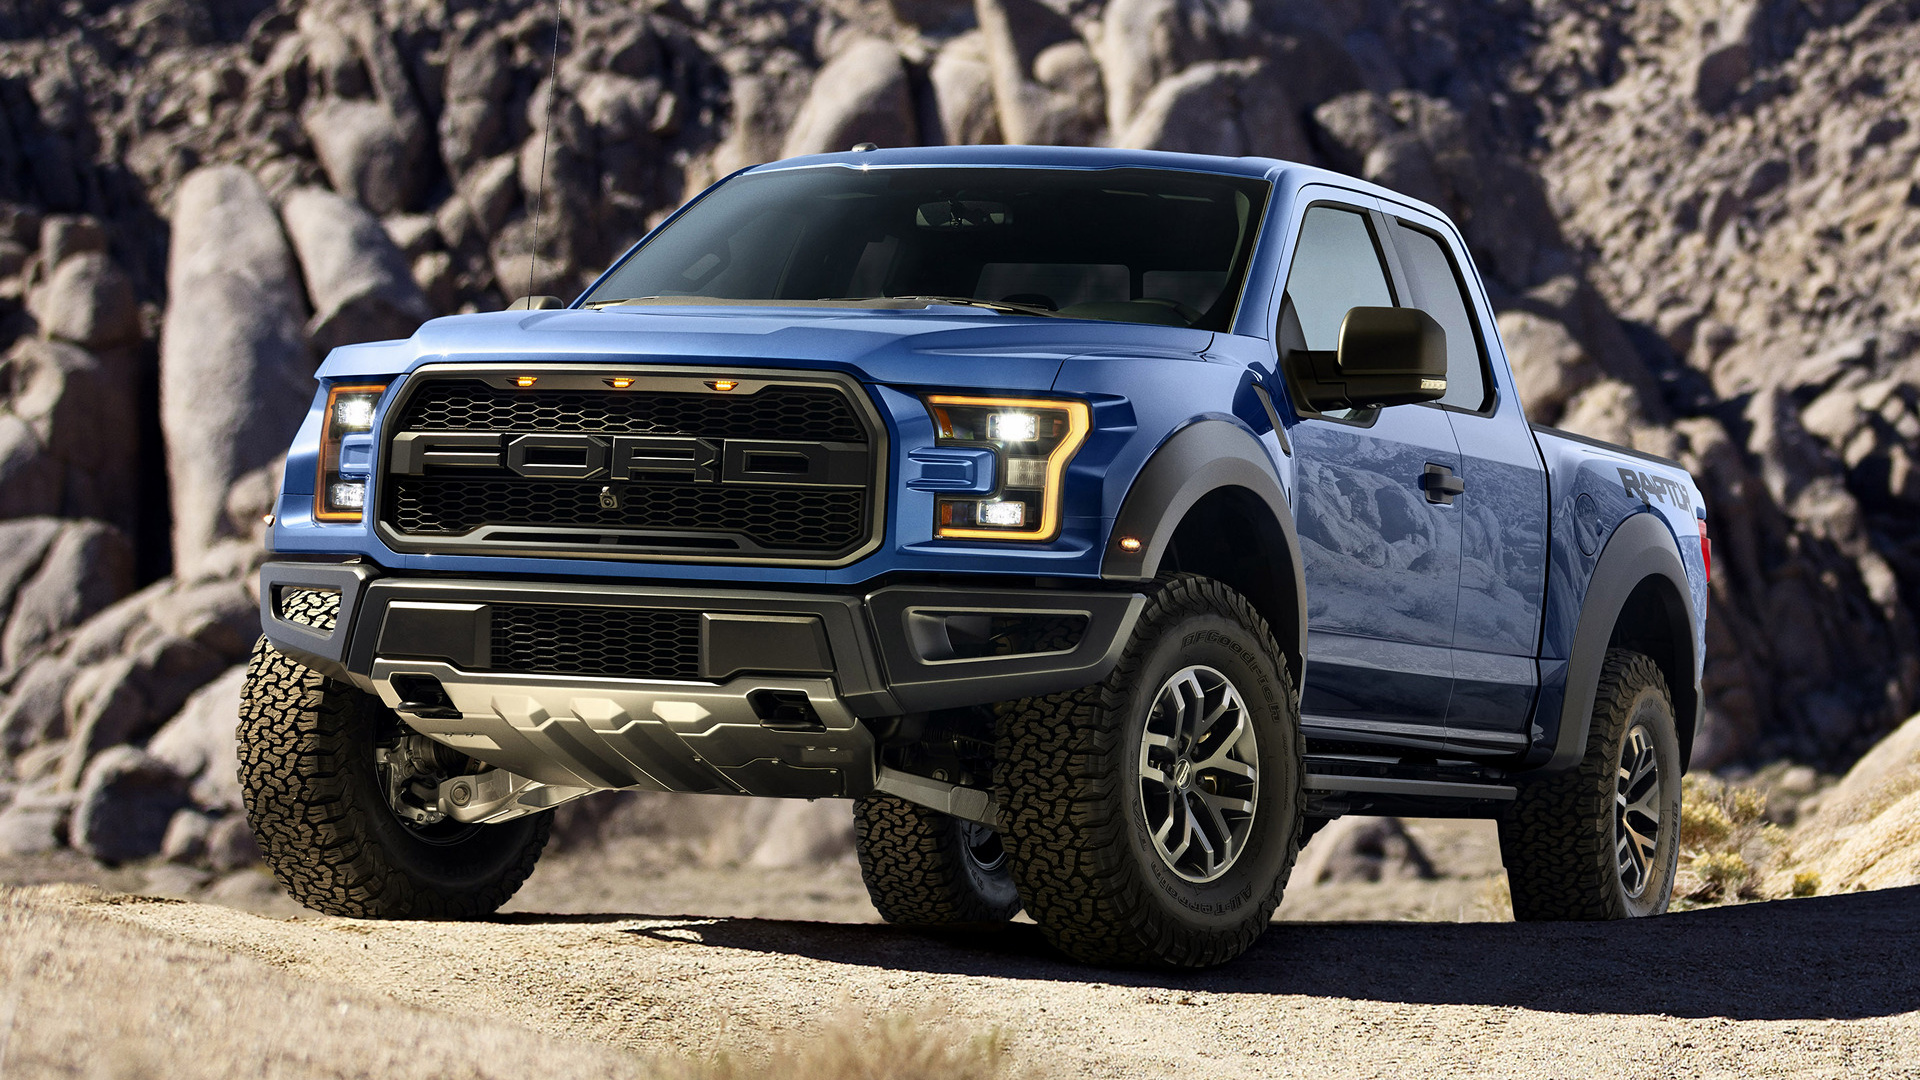 Ford F-150 Raptor SuperCab (2017) Wallpapers and HD Images ...